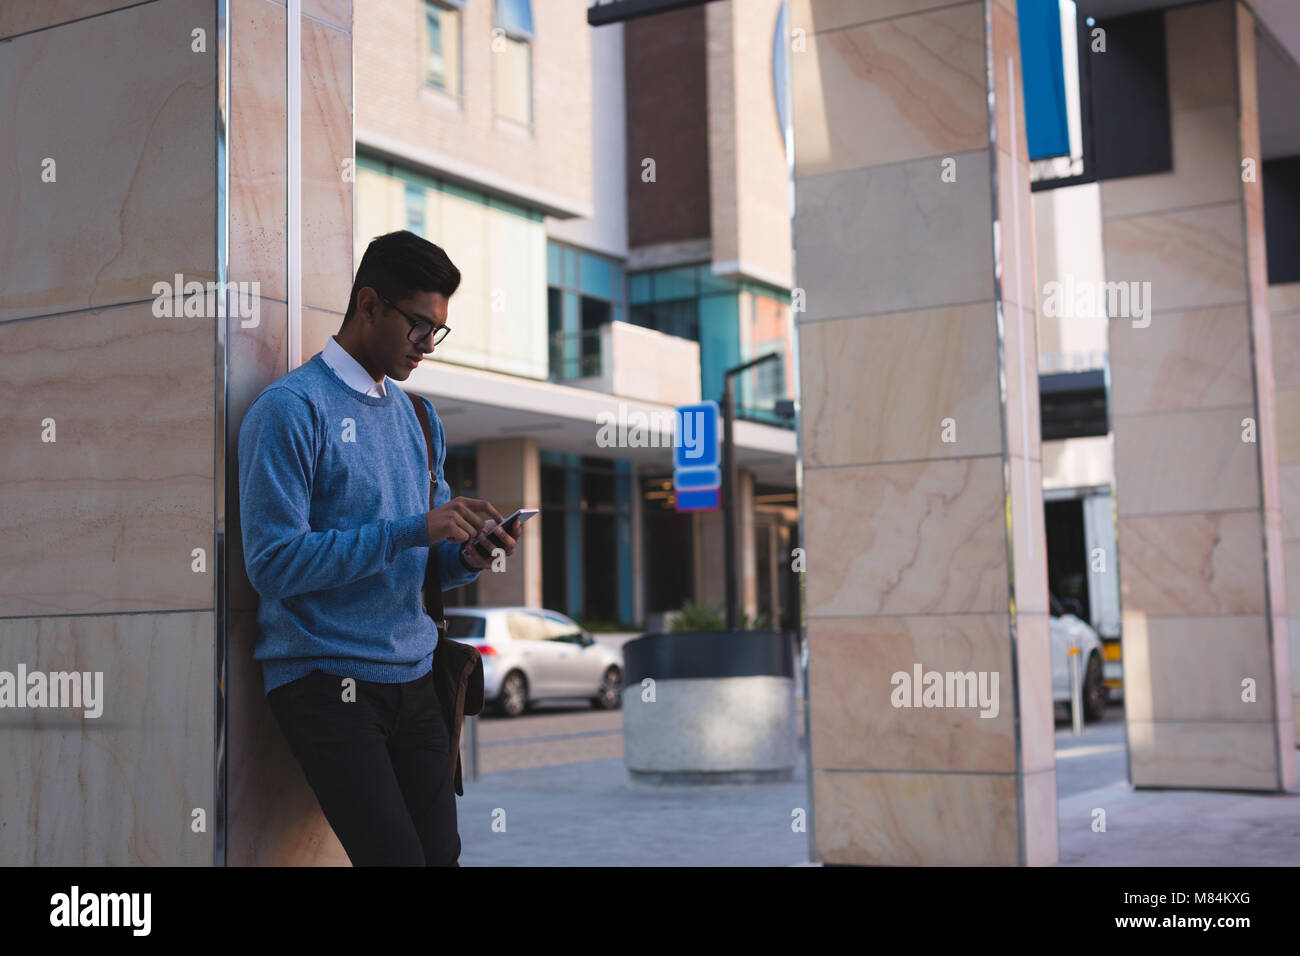 Businessman using mobile phone outside office premises - Stock Image